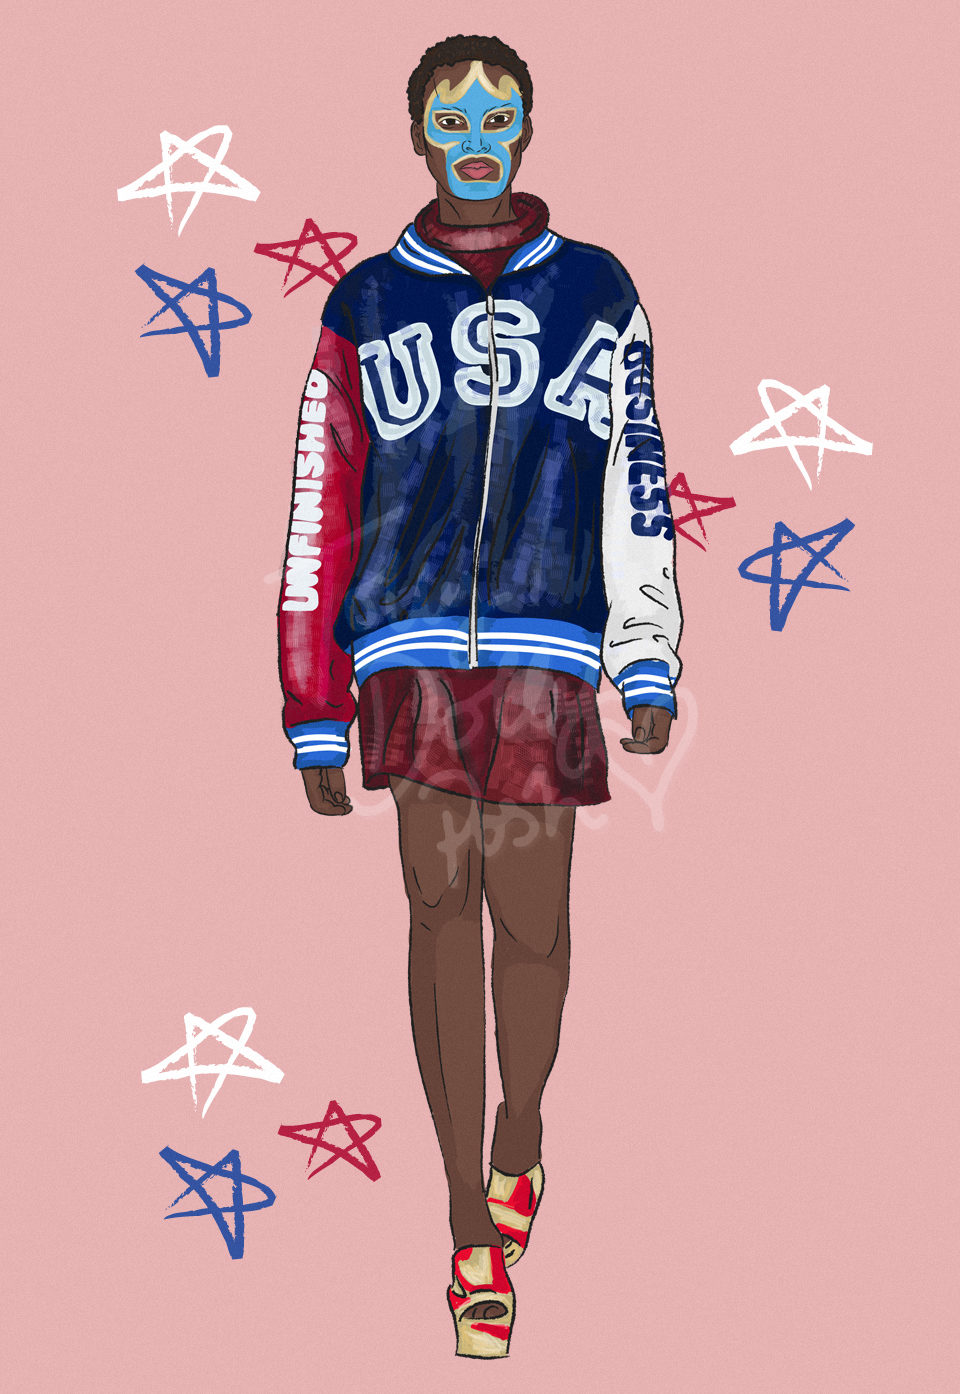 lfw autumn winter 2017 fashion collection illustrations - ASHISH